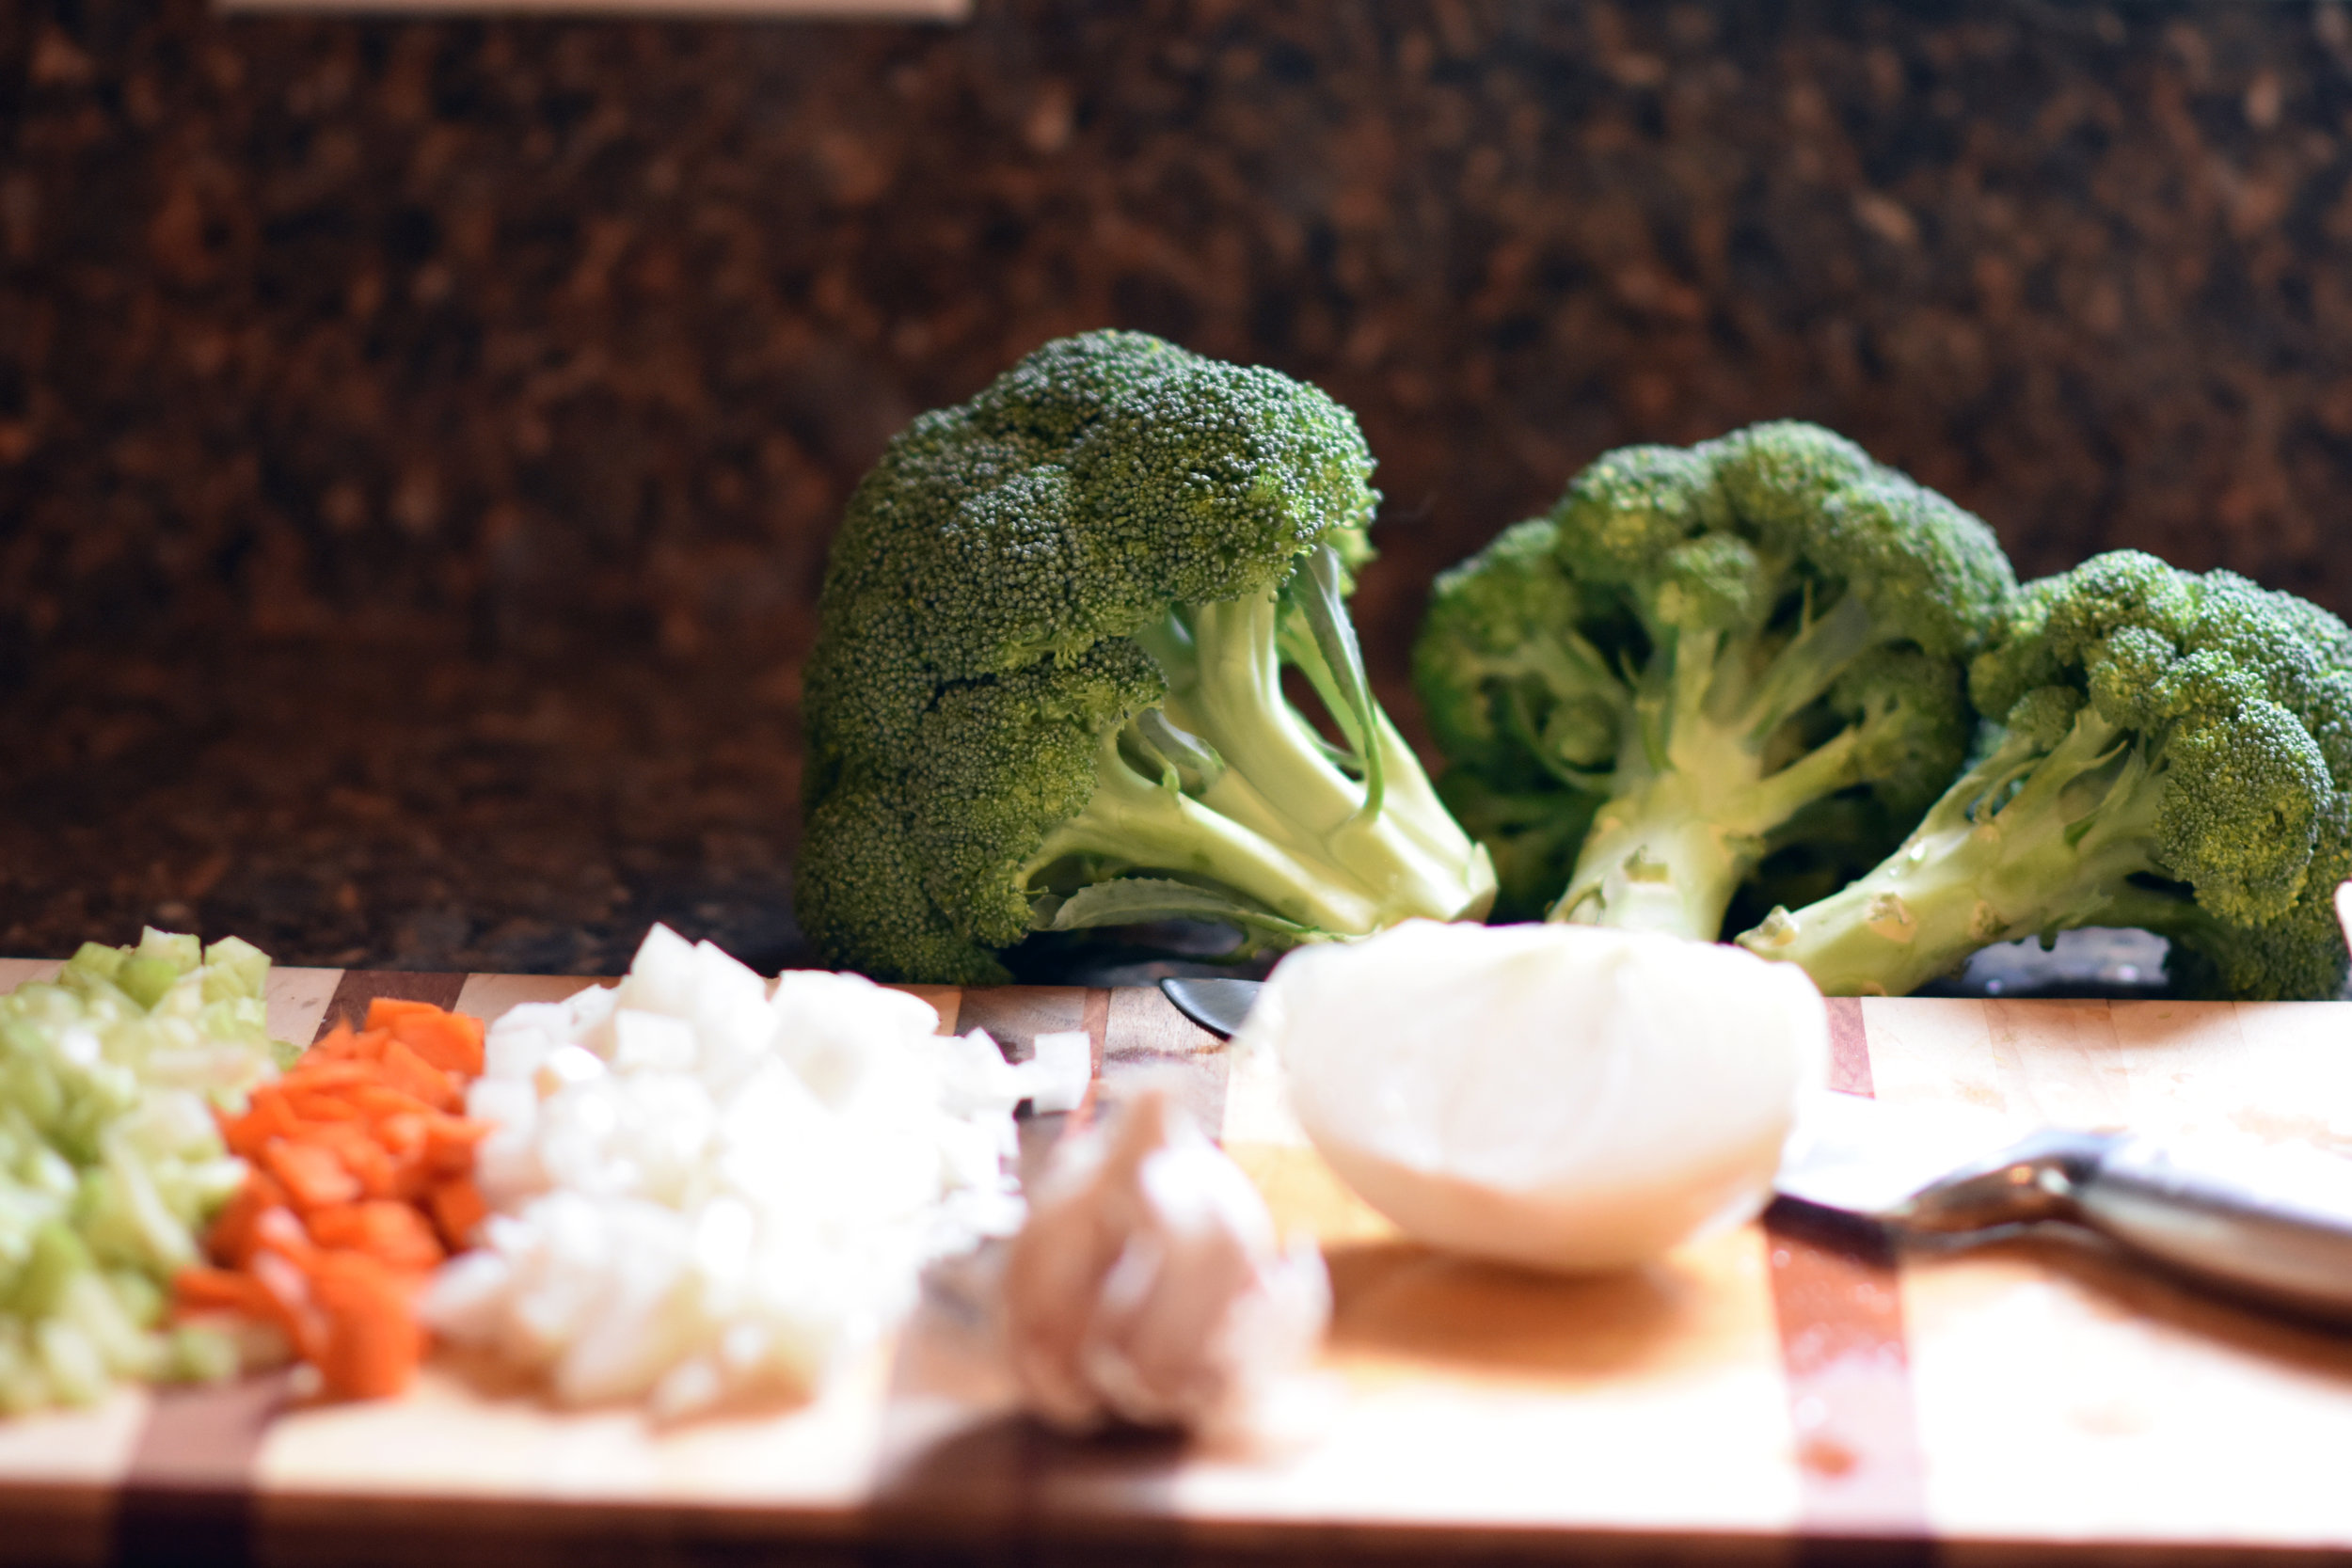 all the veggies - chop those broccoli crowns into florets